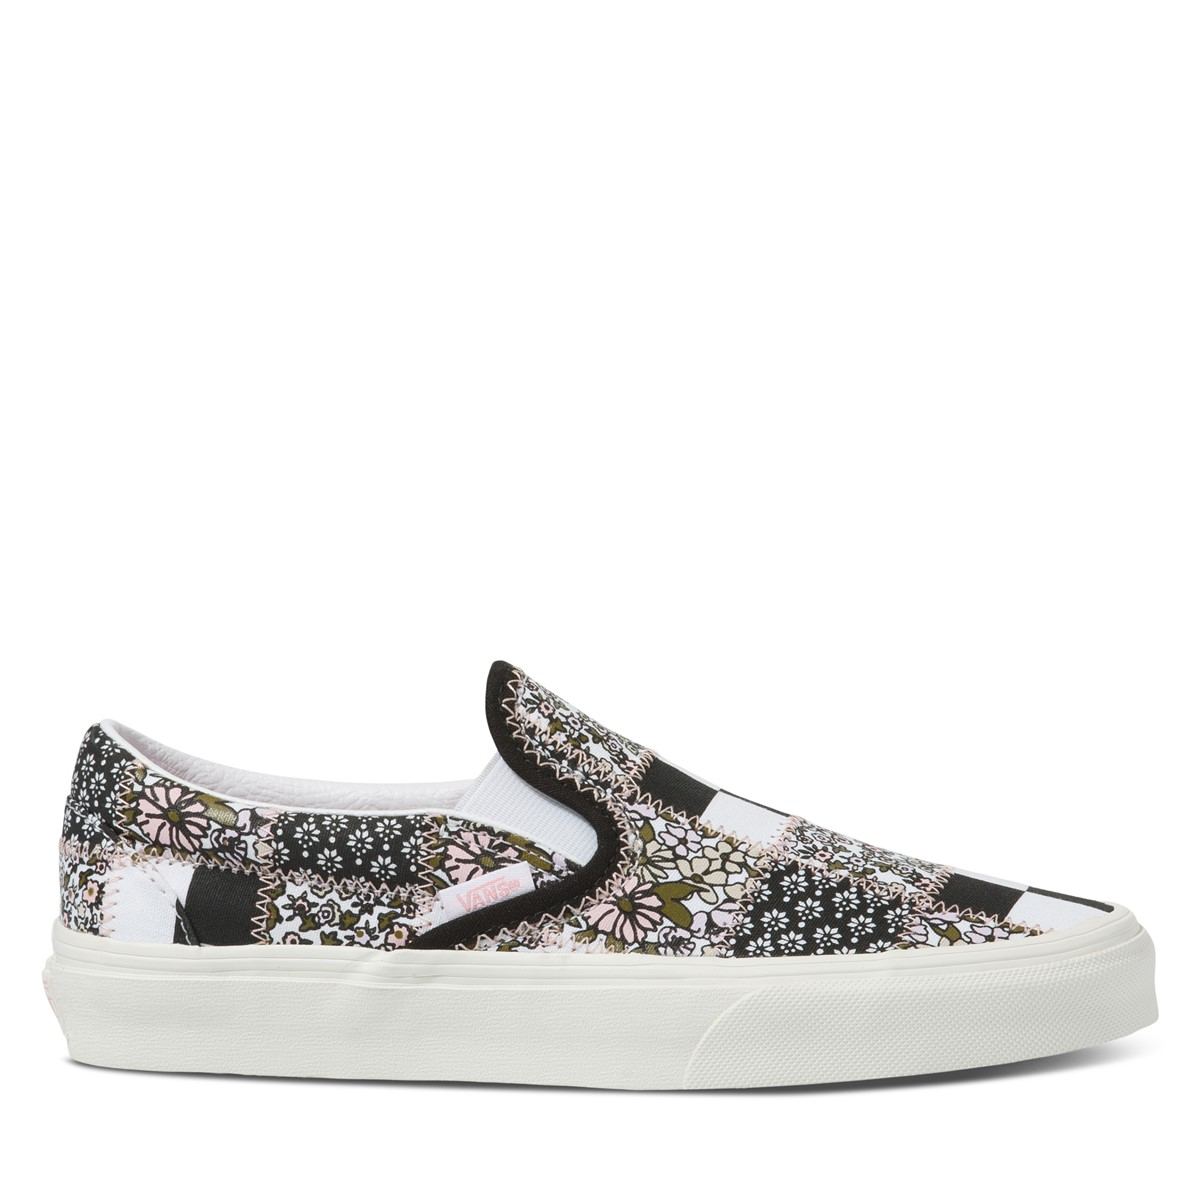 Patchwork Floral Classic Slip-On Sneakers